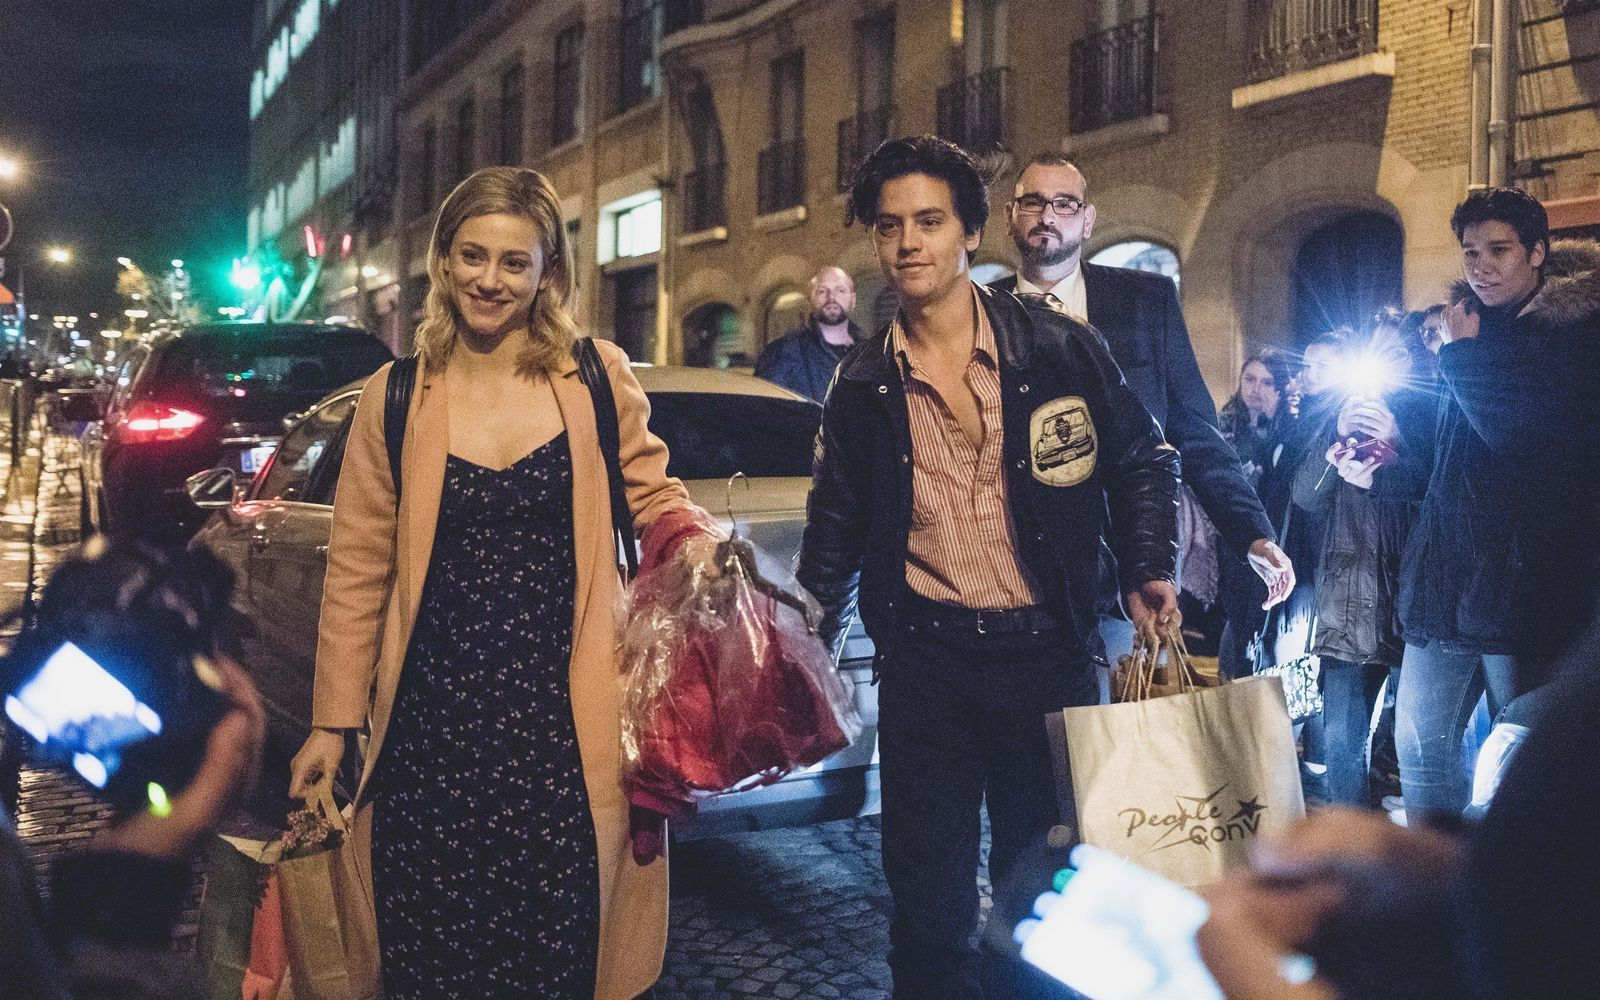 cole sprouse dating betty cooper